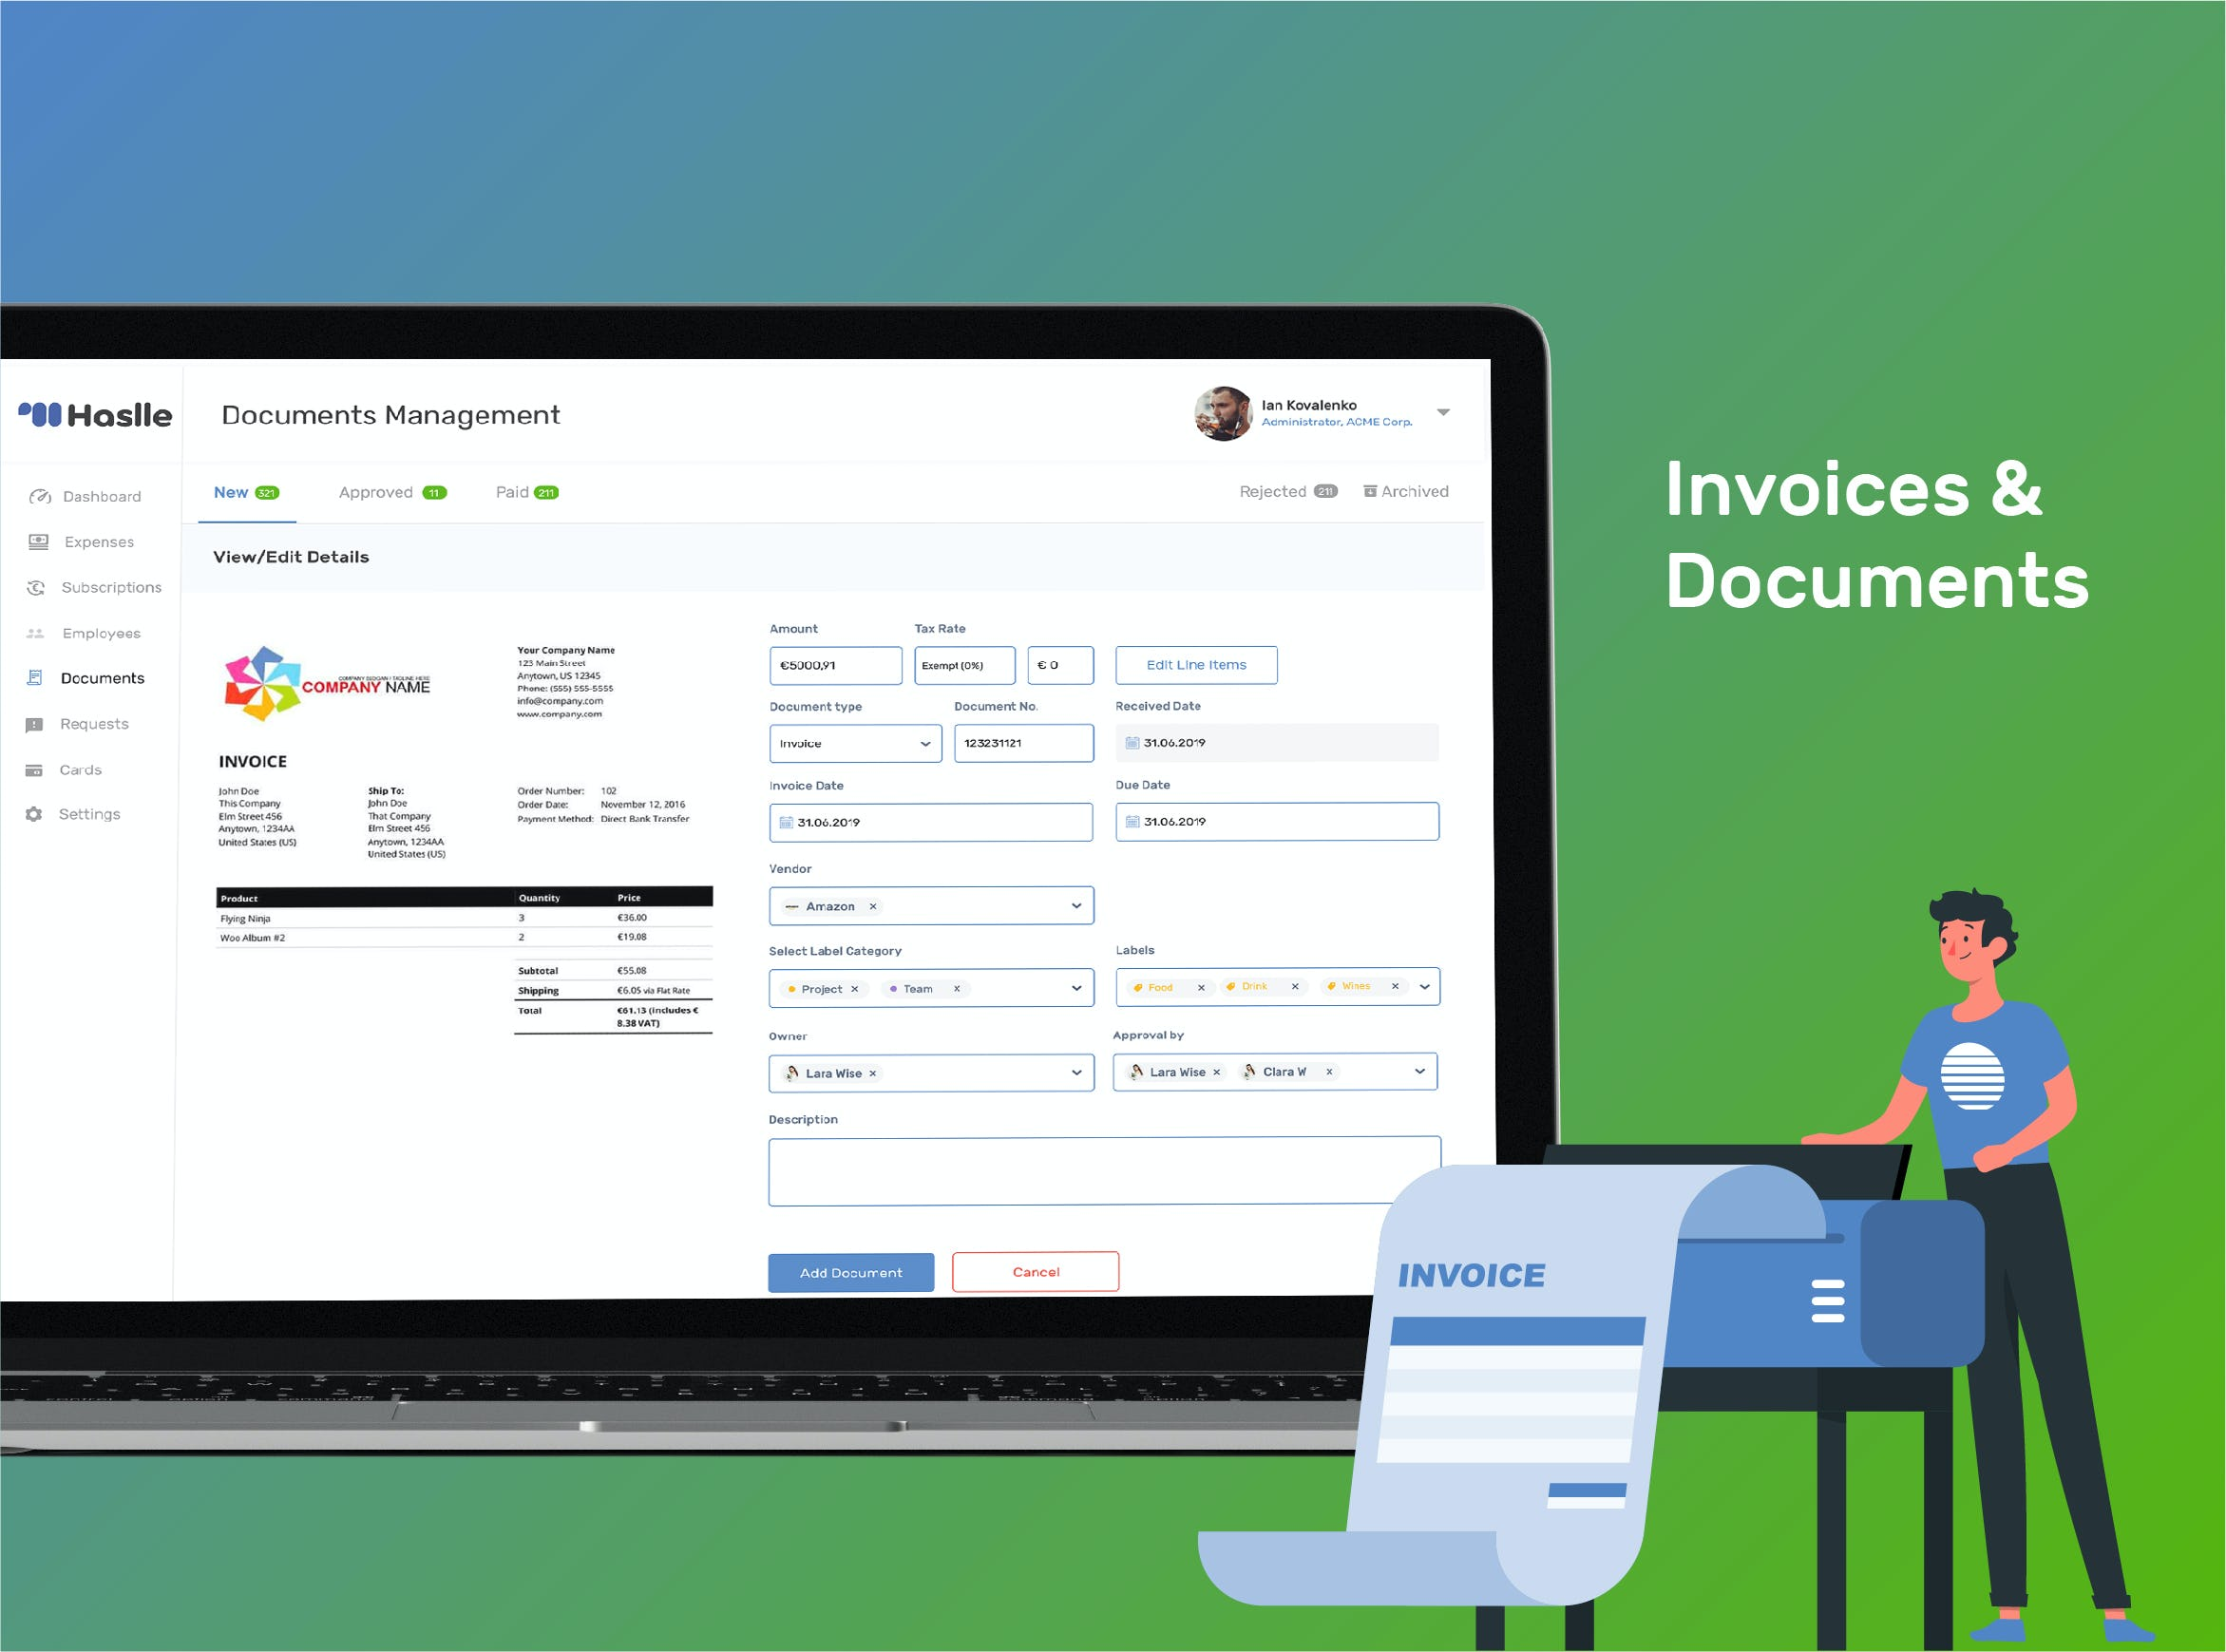 Haslle Software - Invoice Management and Documents Sharing regarding company spending